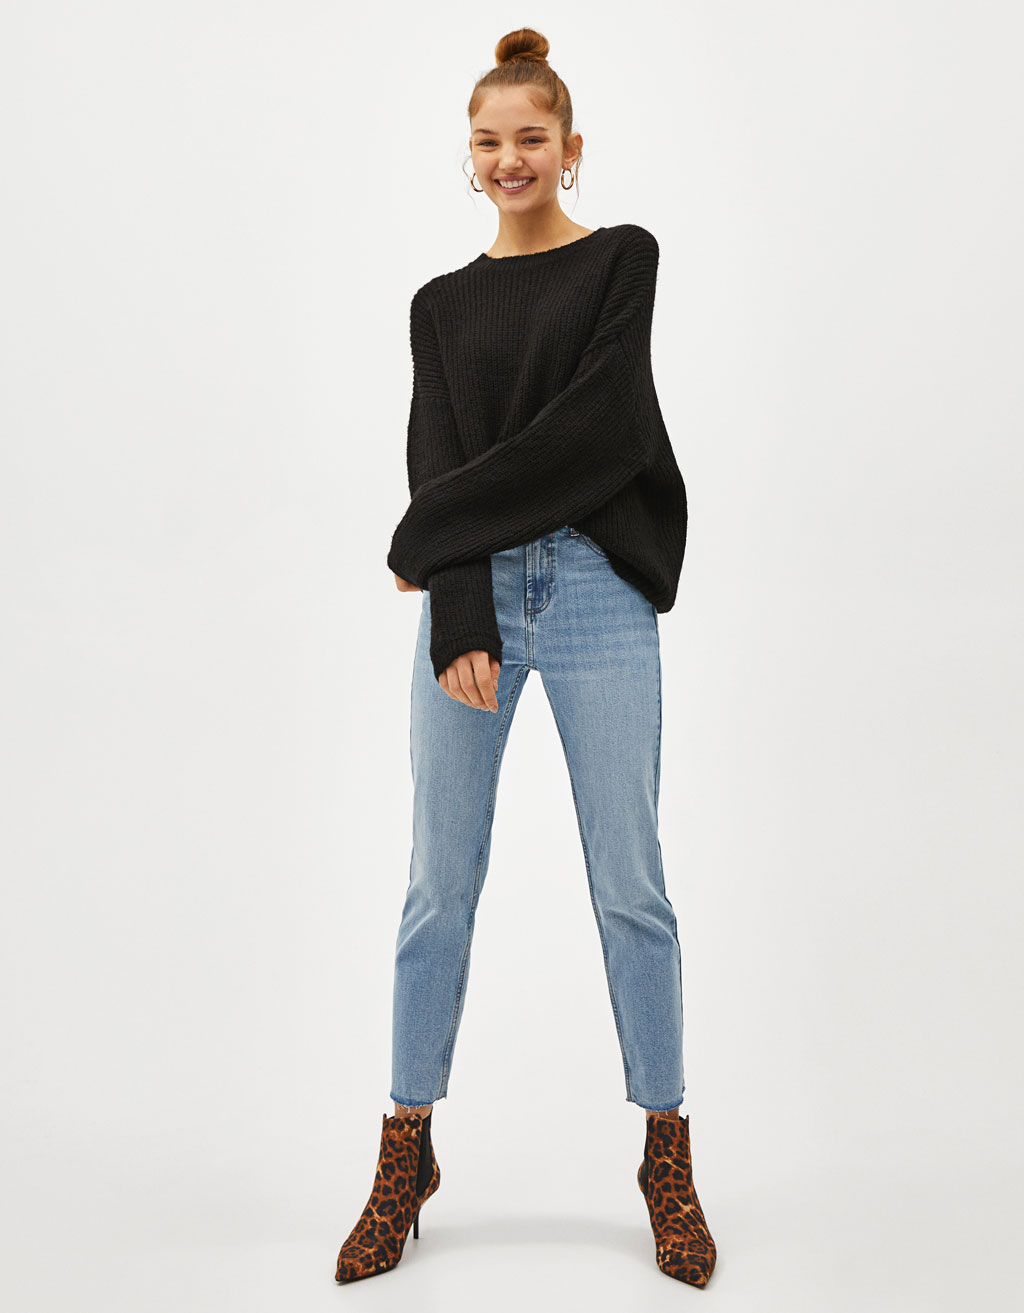 Knit sweater with wide sleeves